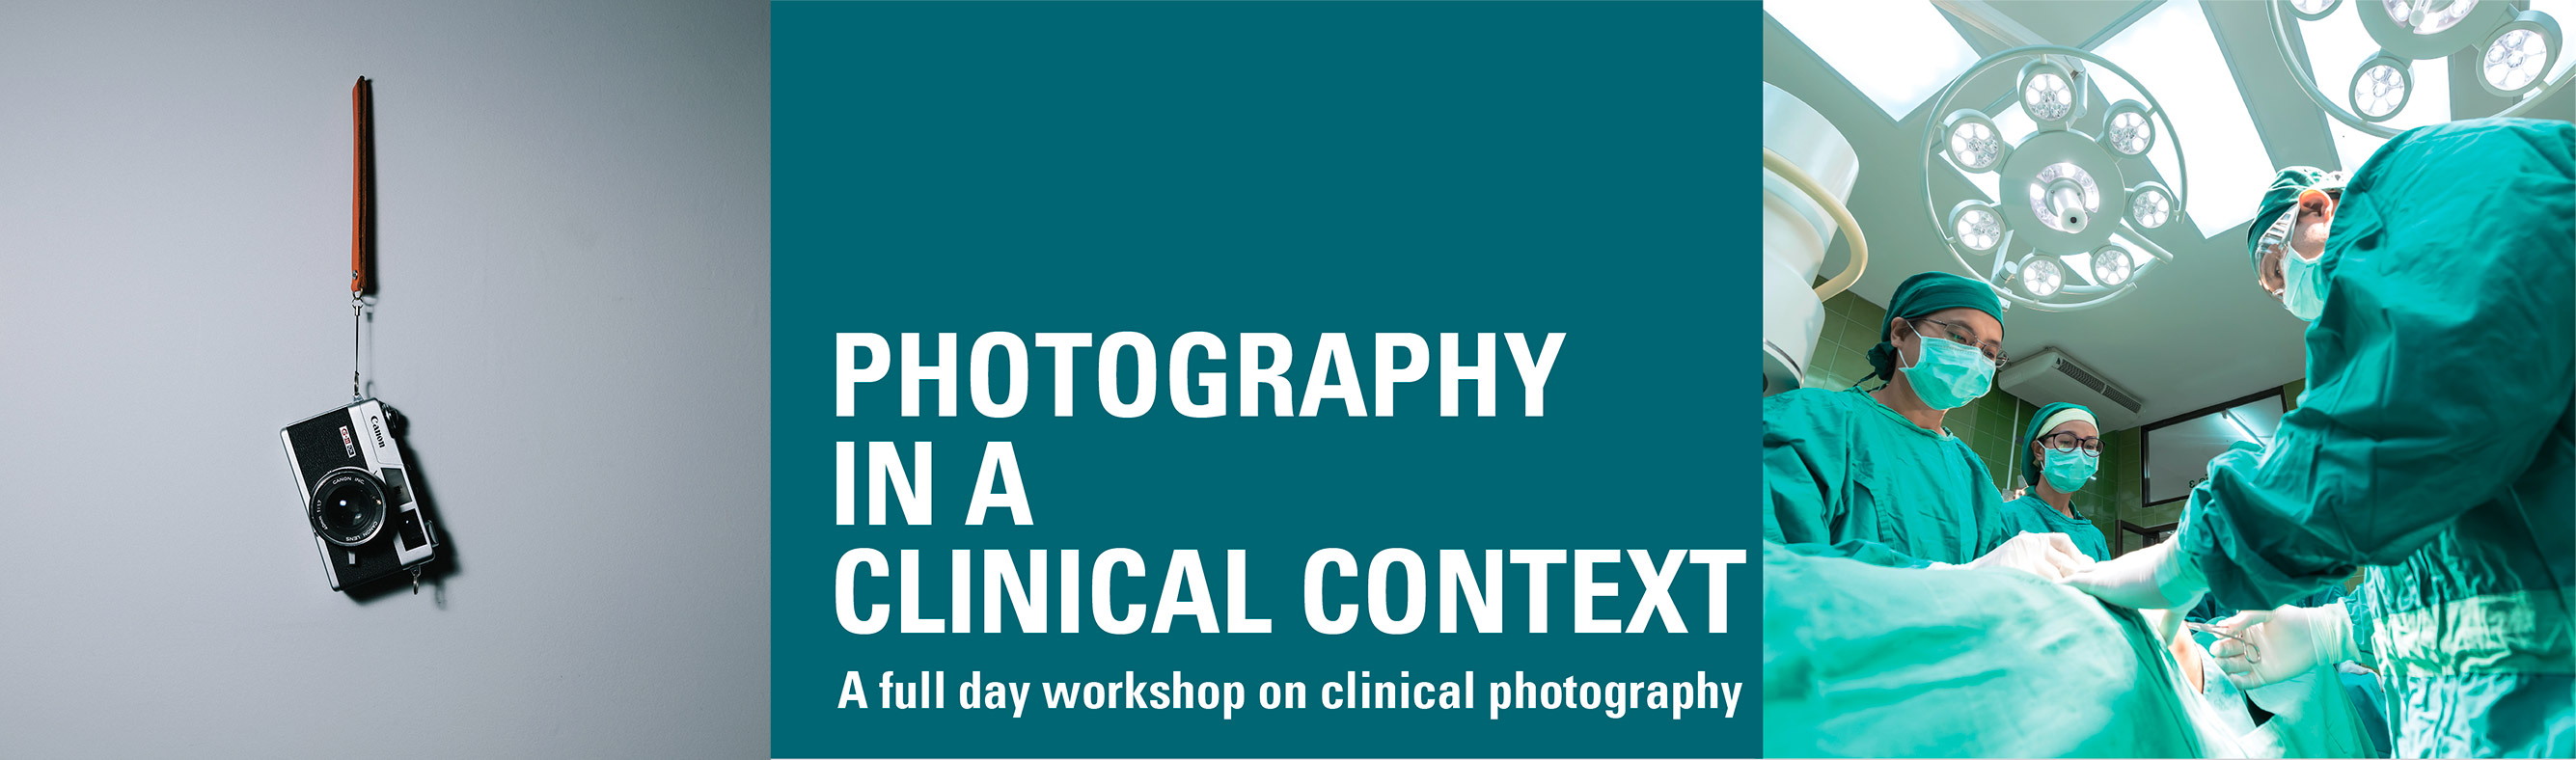 medical photography - clinical photography - IME - Institute of Multimedia Education - CSTH - Kalubowila Hospital